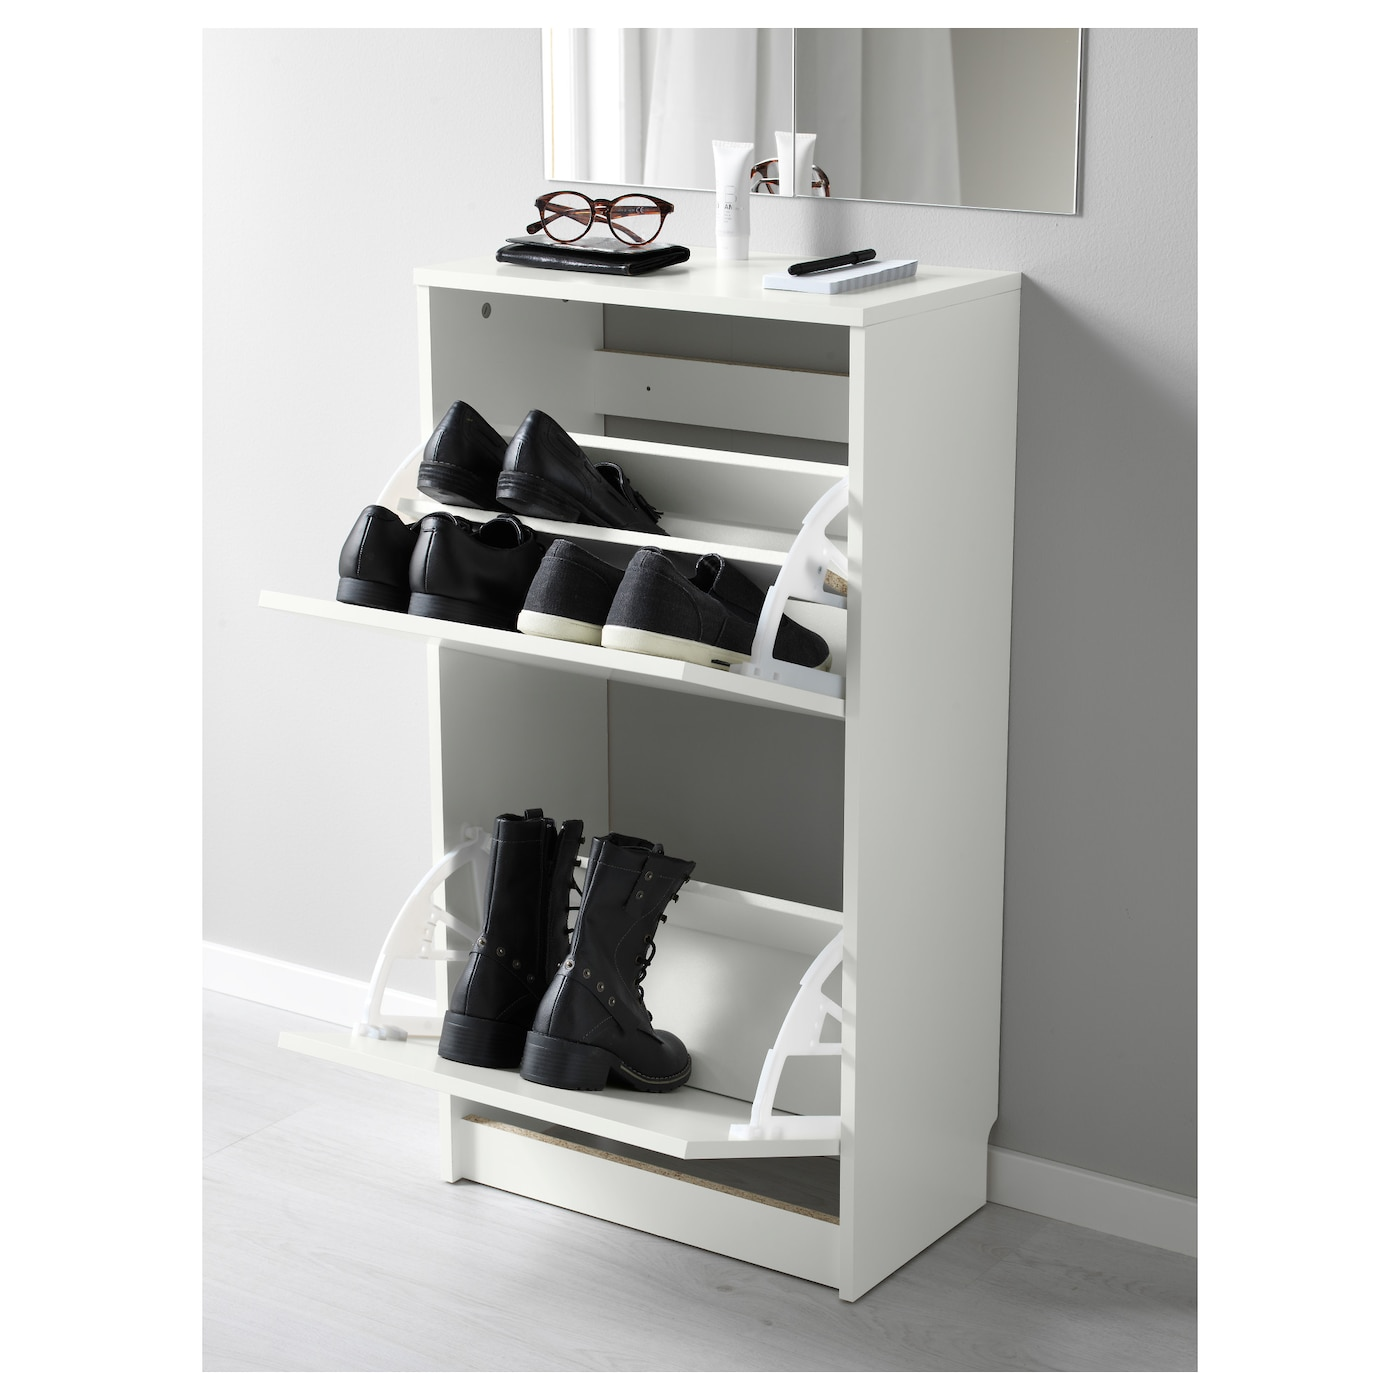 BISSA Shoe cabinet with 2 compartments White 49x93 cm - IKEA